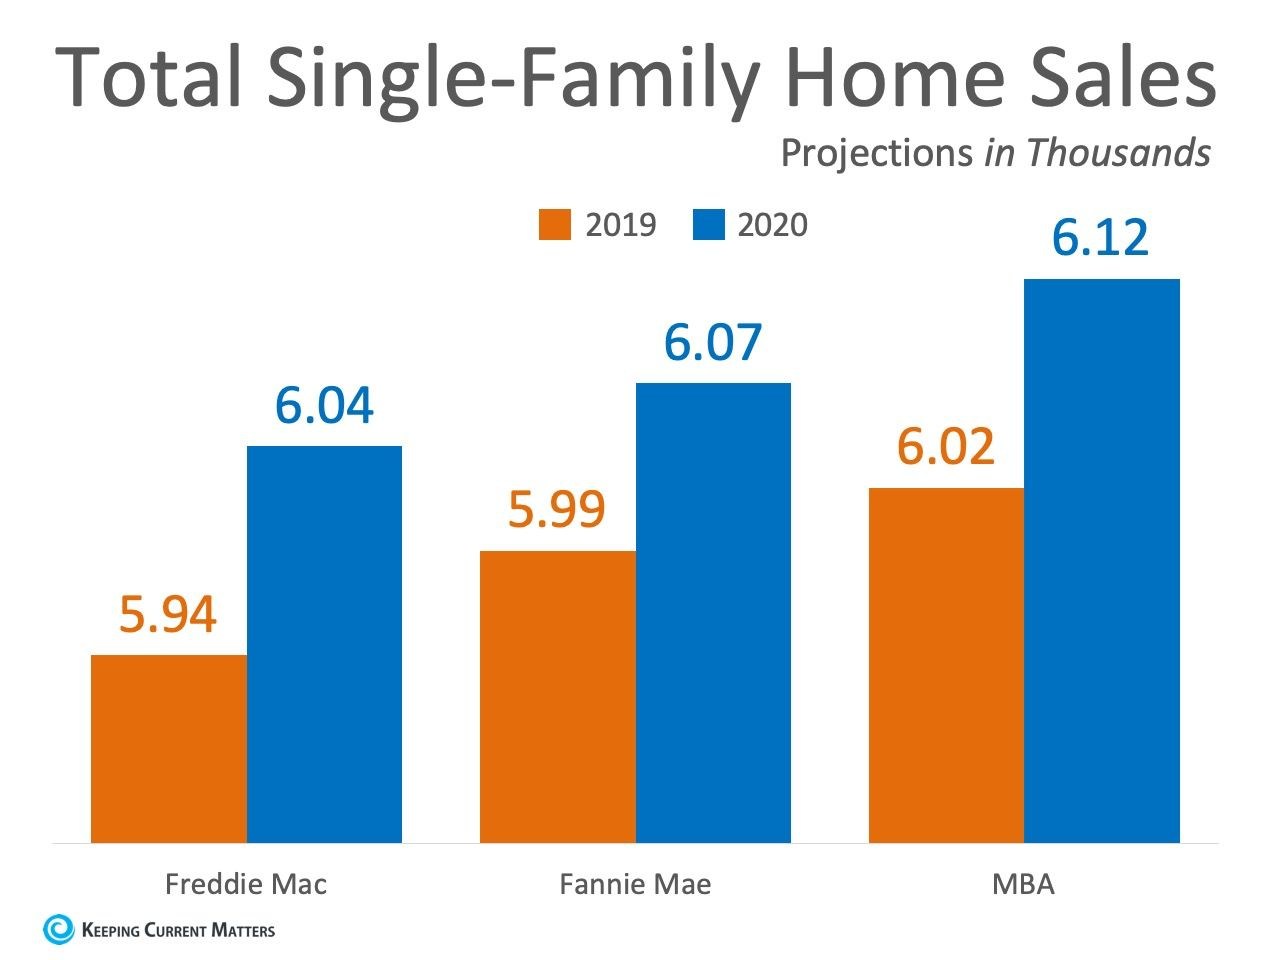 Home Mortgage Rates 2020.Home Sales Expected To Continue Increasing In 2020 Fannie